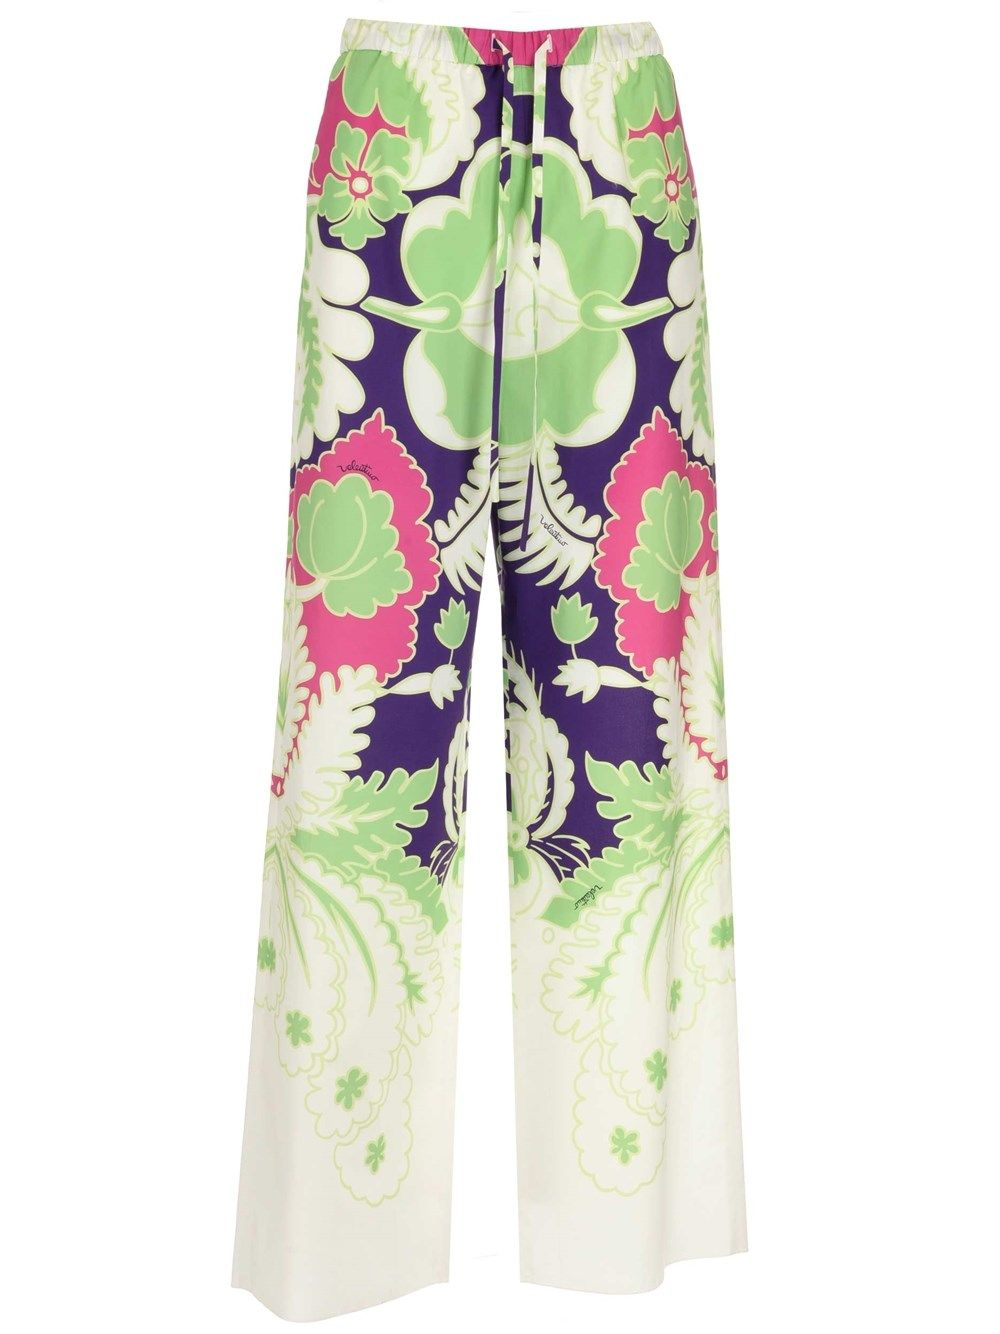 Valentino Pants VALENTINO WOMEN'S MULTICOLOR OTHER MATERIALS PANTS